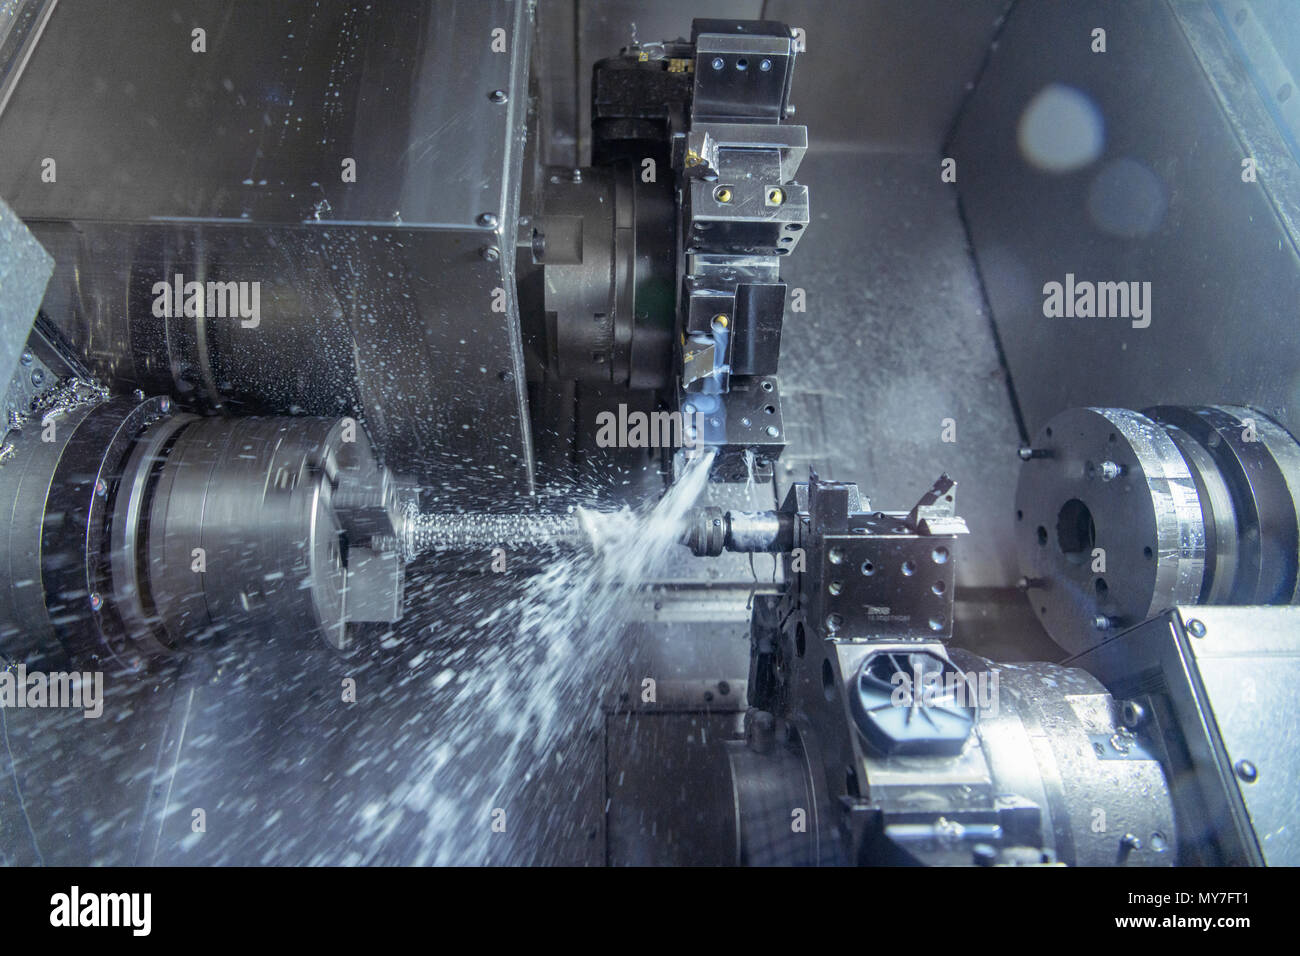 Close up of lathe cutting metal in engineering factory - Stock Image